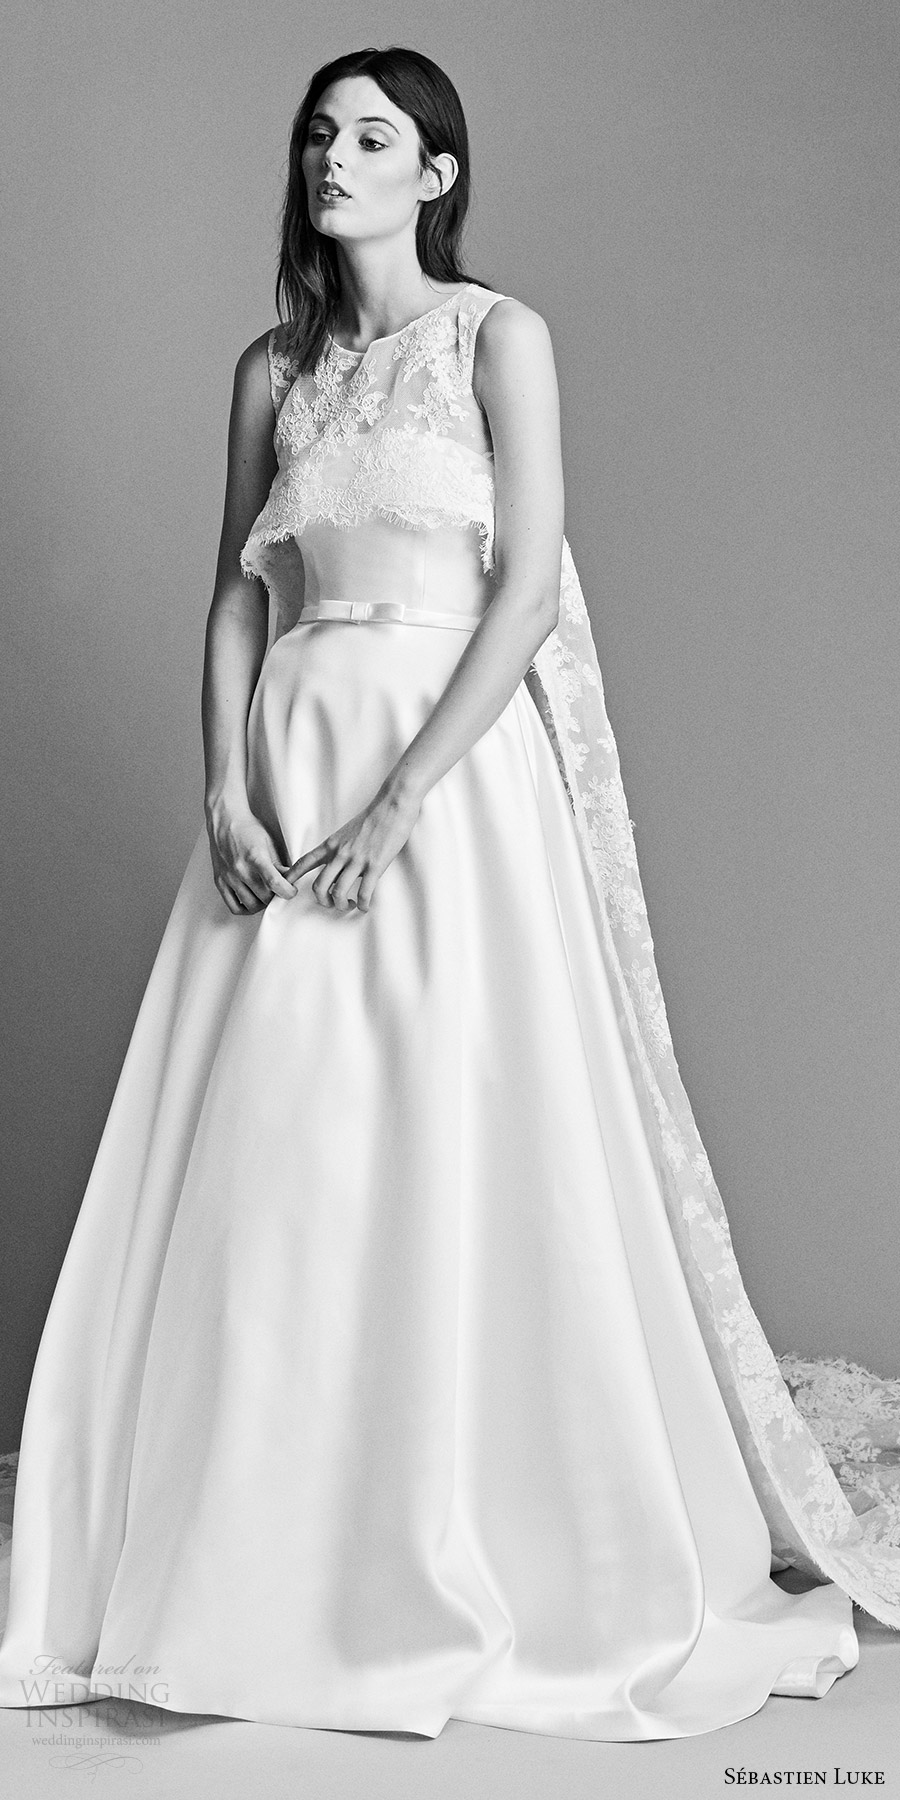 sebastien luke spring 2018 bridal strapless a line wedding dress lace crop top (18b21a) zv cathedral train modern